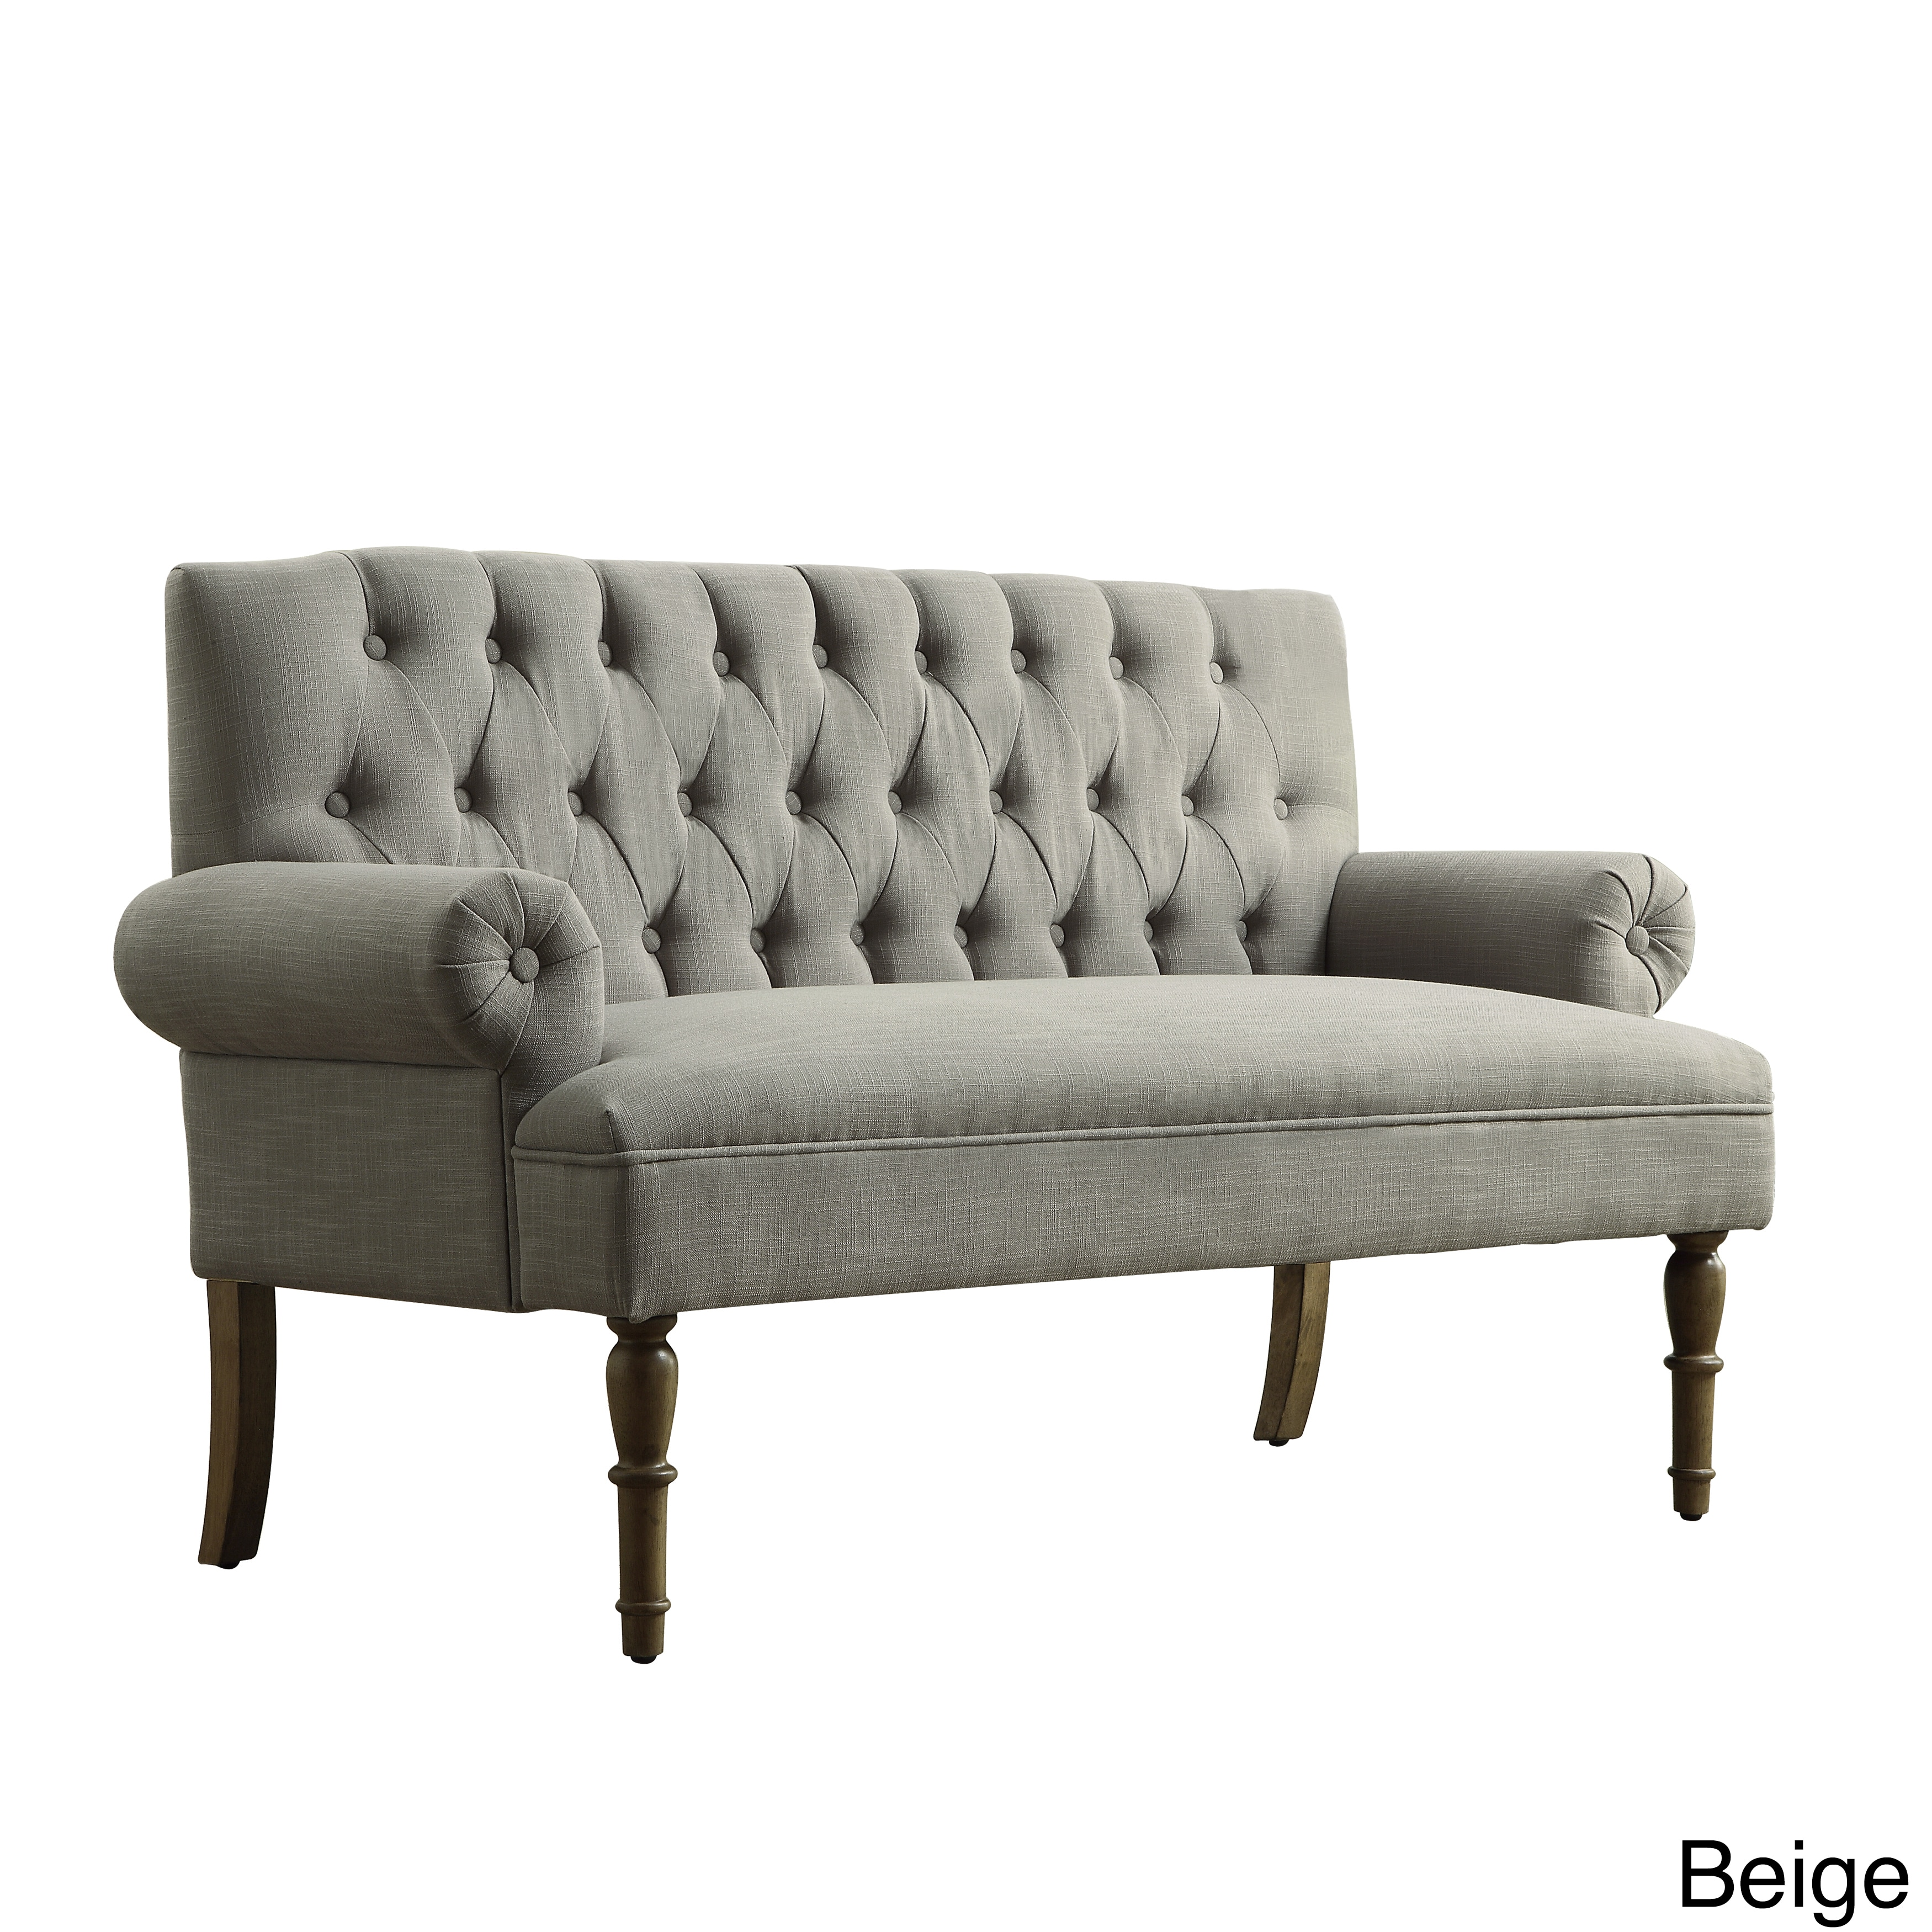 Brand new Upholstered Settee Loveseat with Tufting Back - Free Shipping  NP27